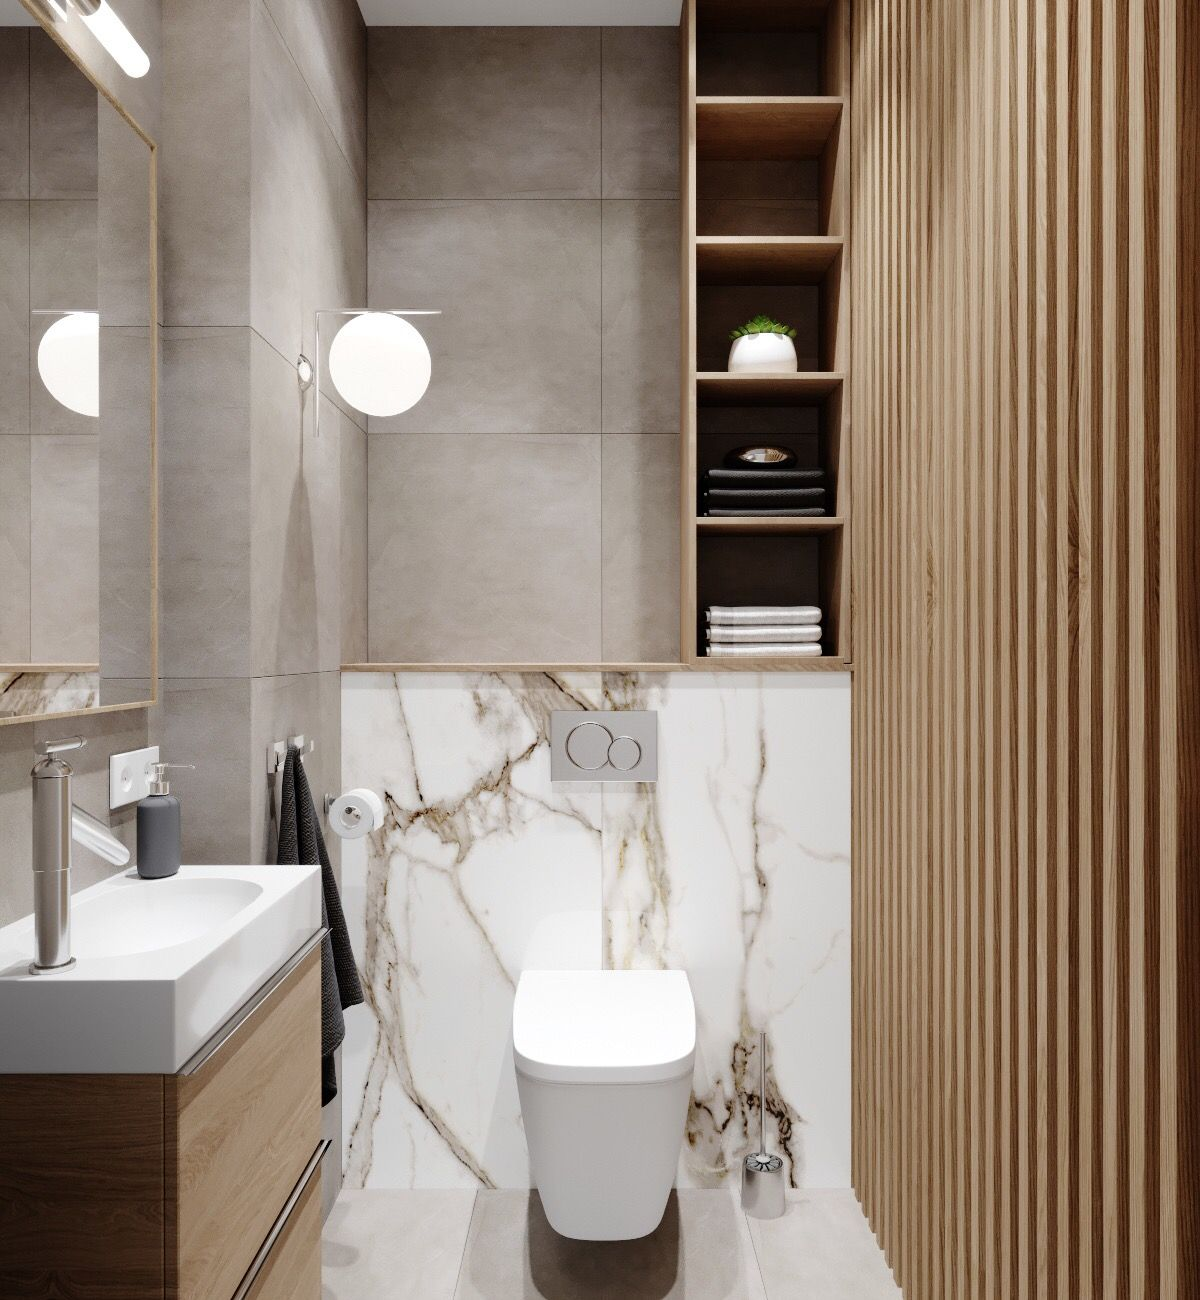 Pin By Architectural Lighting Resourc On Home Wc Design Toilet Design Bathroom Remodel Cost